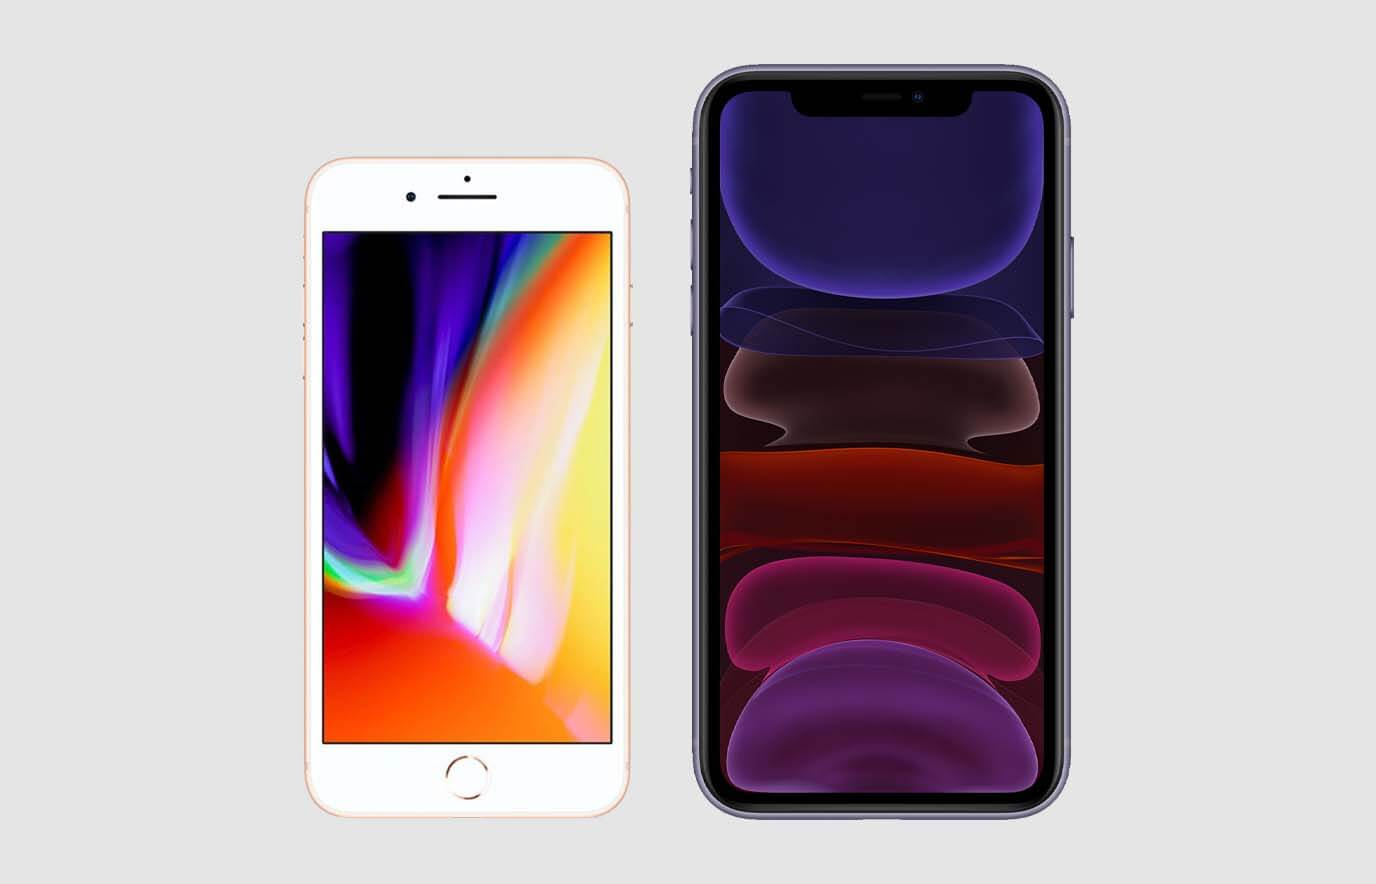 iPhone 8 vs iPhone 11. Wat is het verschil?